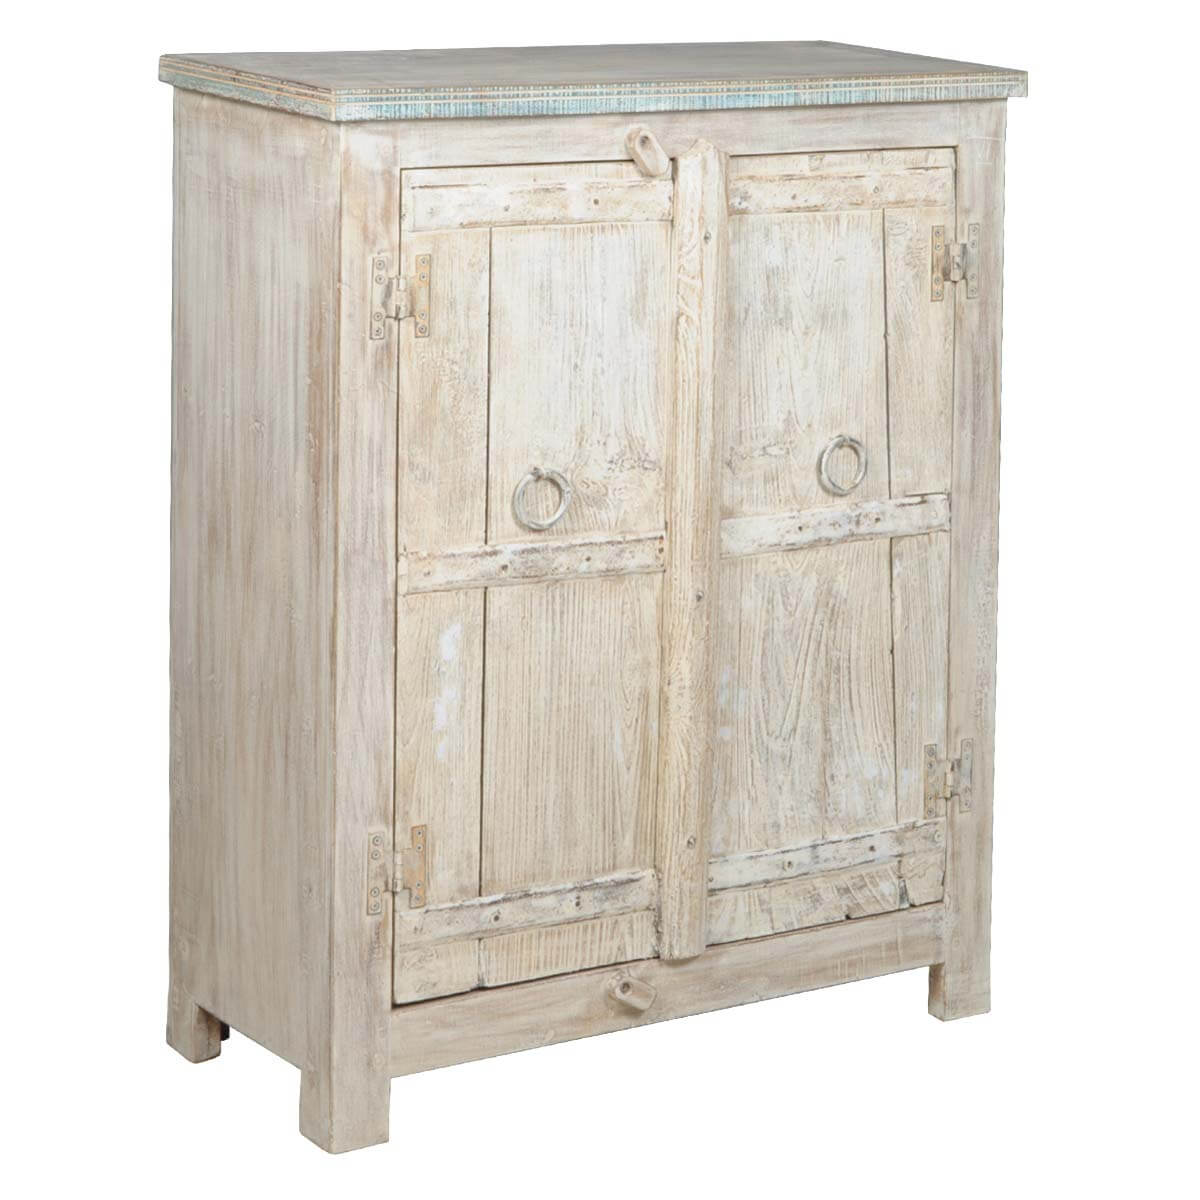 Rustic Antique White Kitchen Cabinets: Appalachian Rustic Antique White Reclaimed Wood Storage